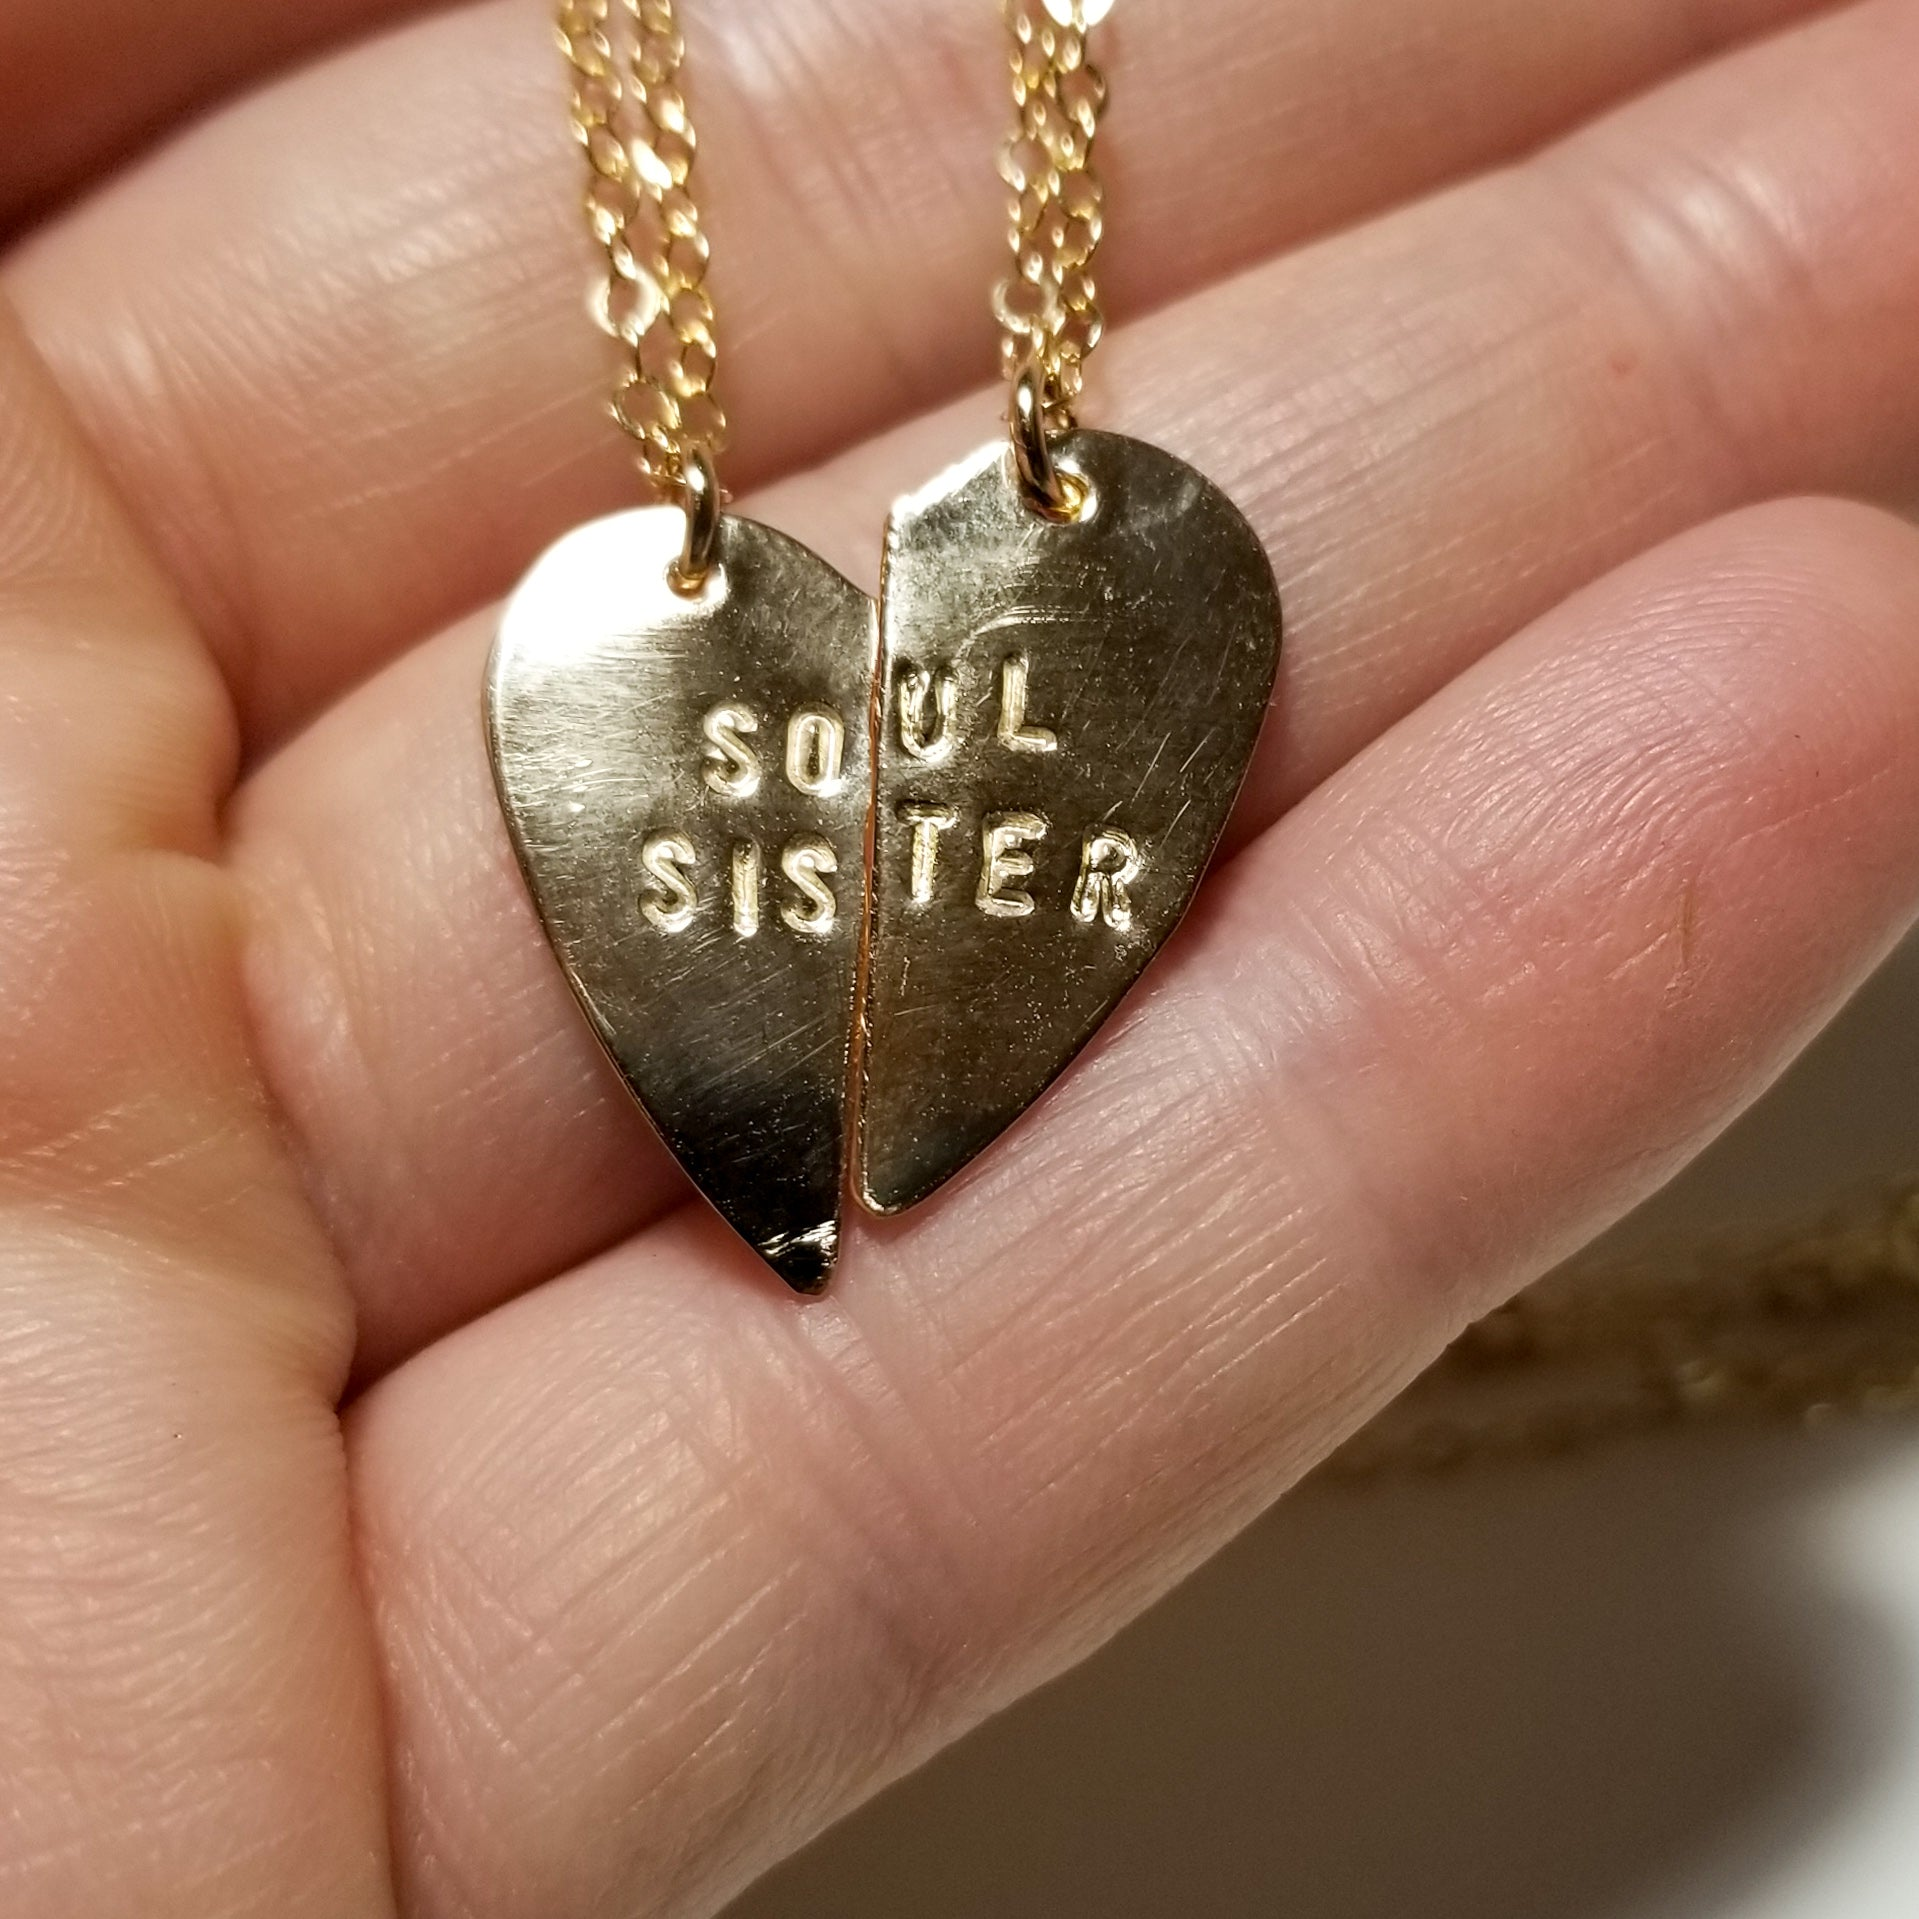 Soul sister - 14k yellow gold filled necklaces